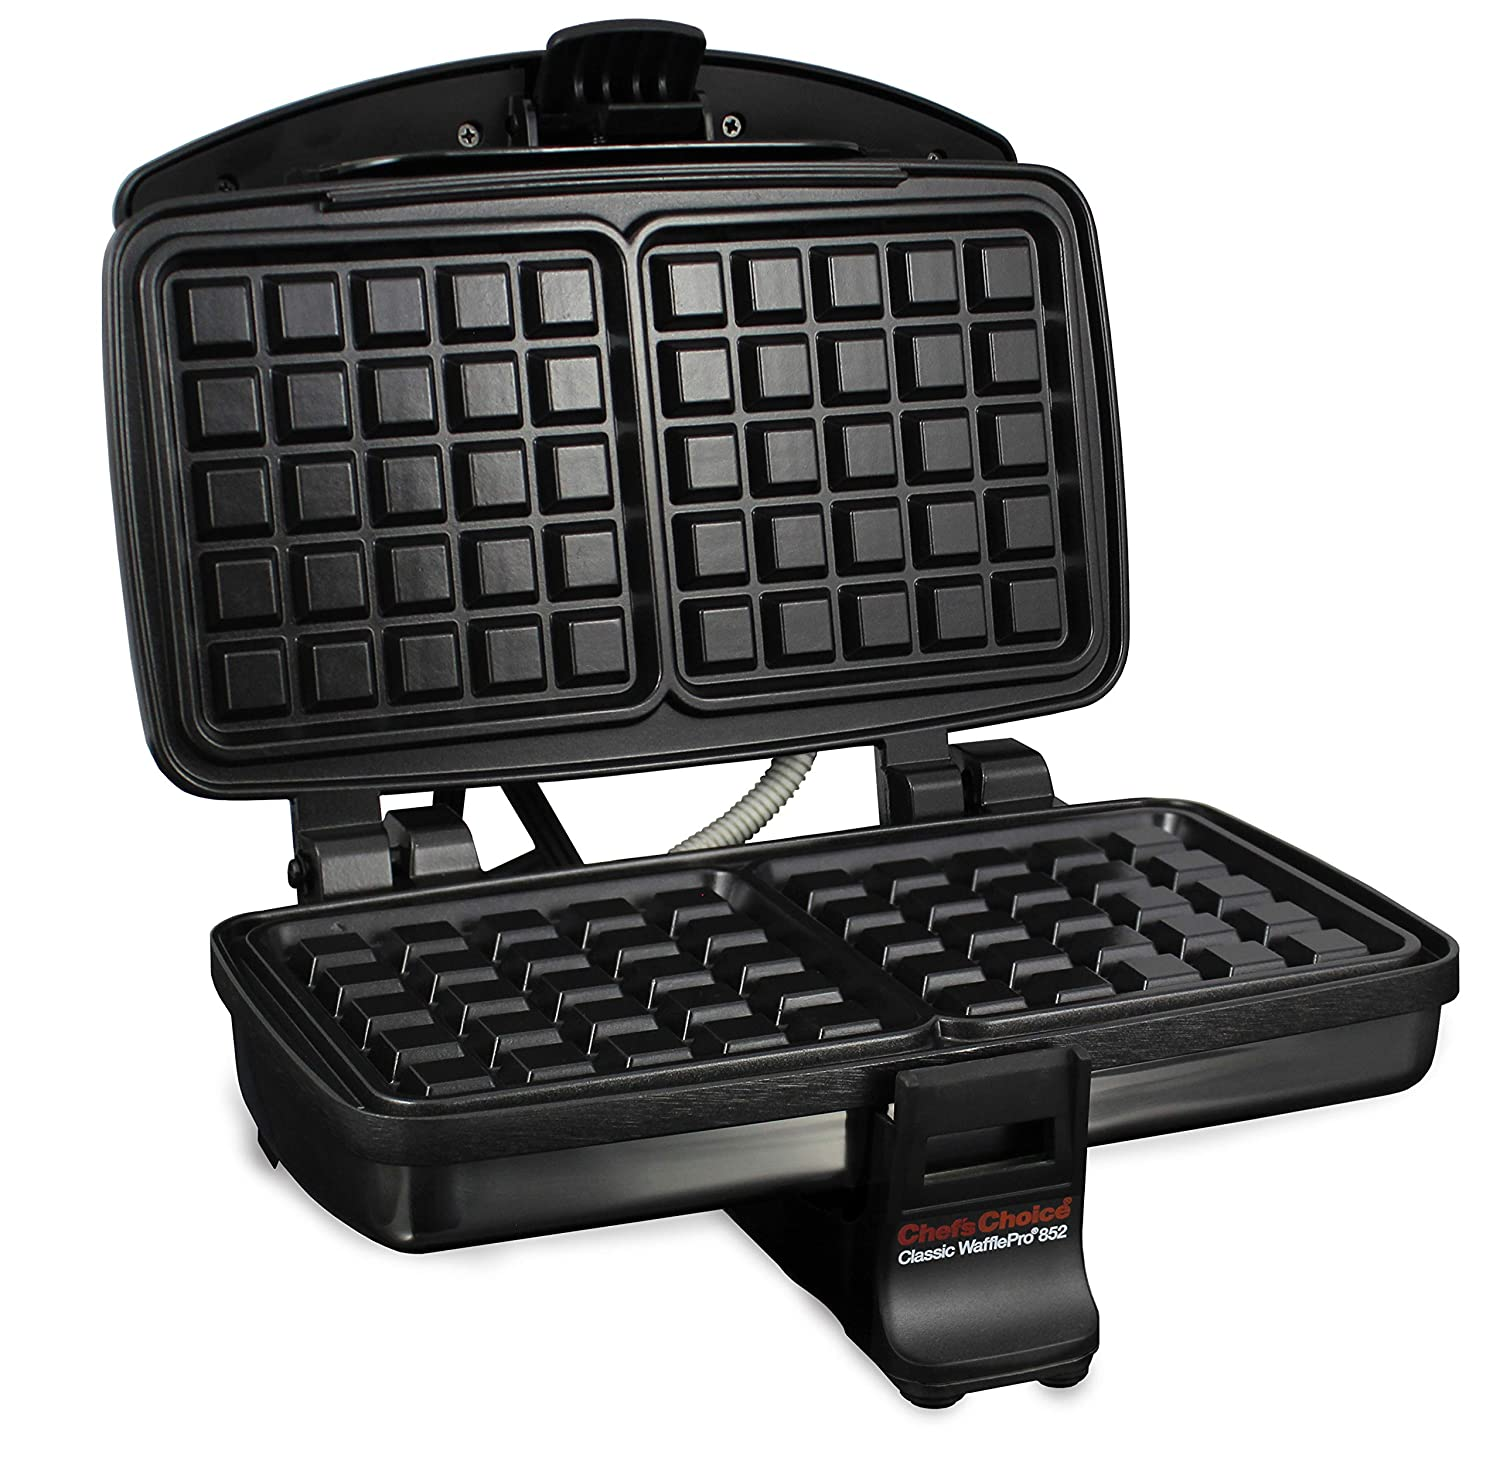 Chef'sChoice 852 Classic WafflePro Nonstick Waffle Maker Features Adjustable Baking Control and Instant Temperature Recovery for Delicious Waffles and Includes Built-in Cord Storage, 2-Square, Silver Edgecraft 8520000